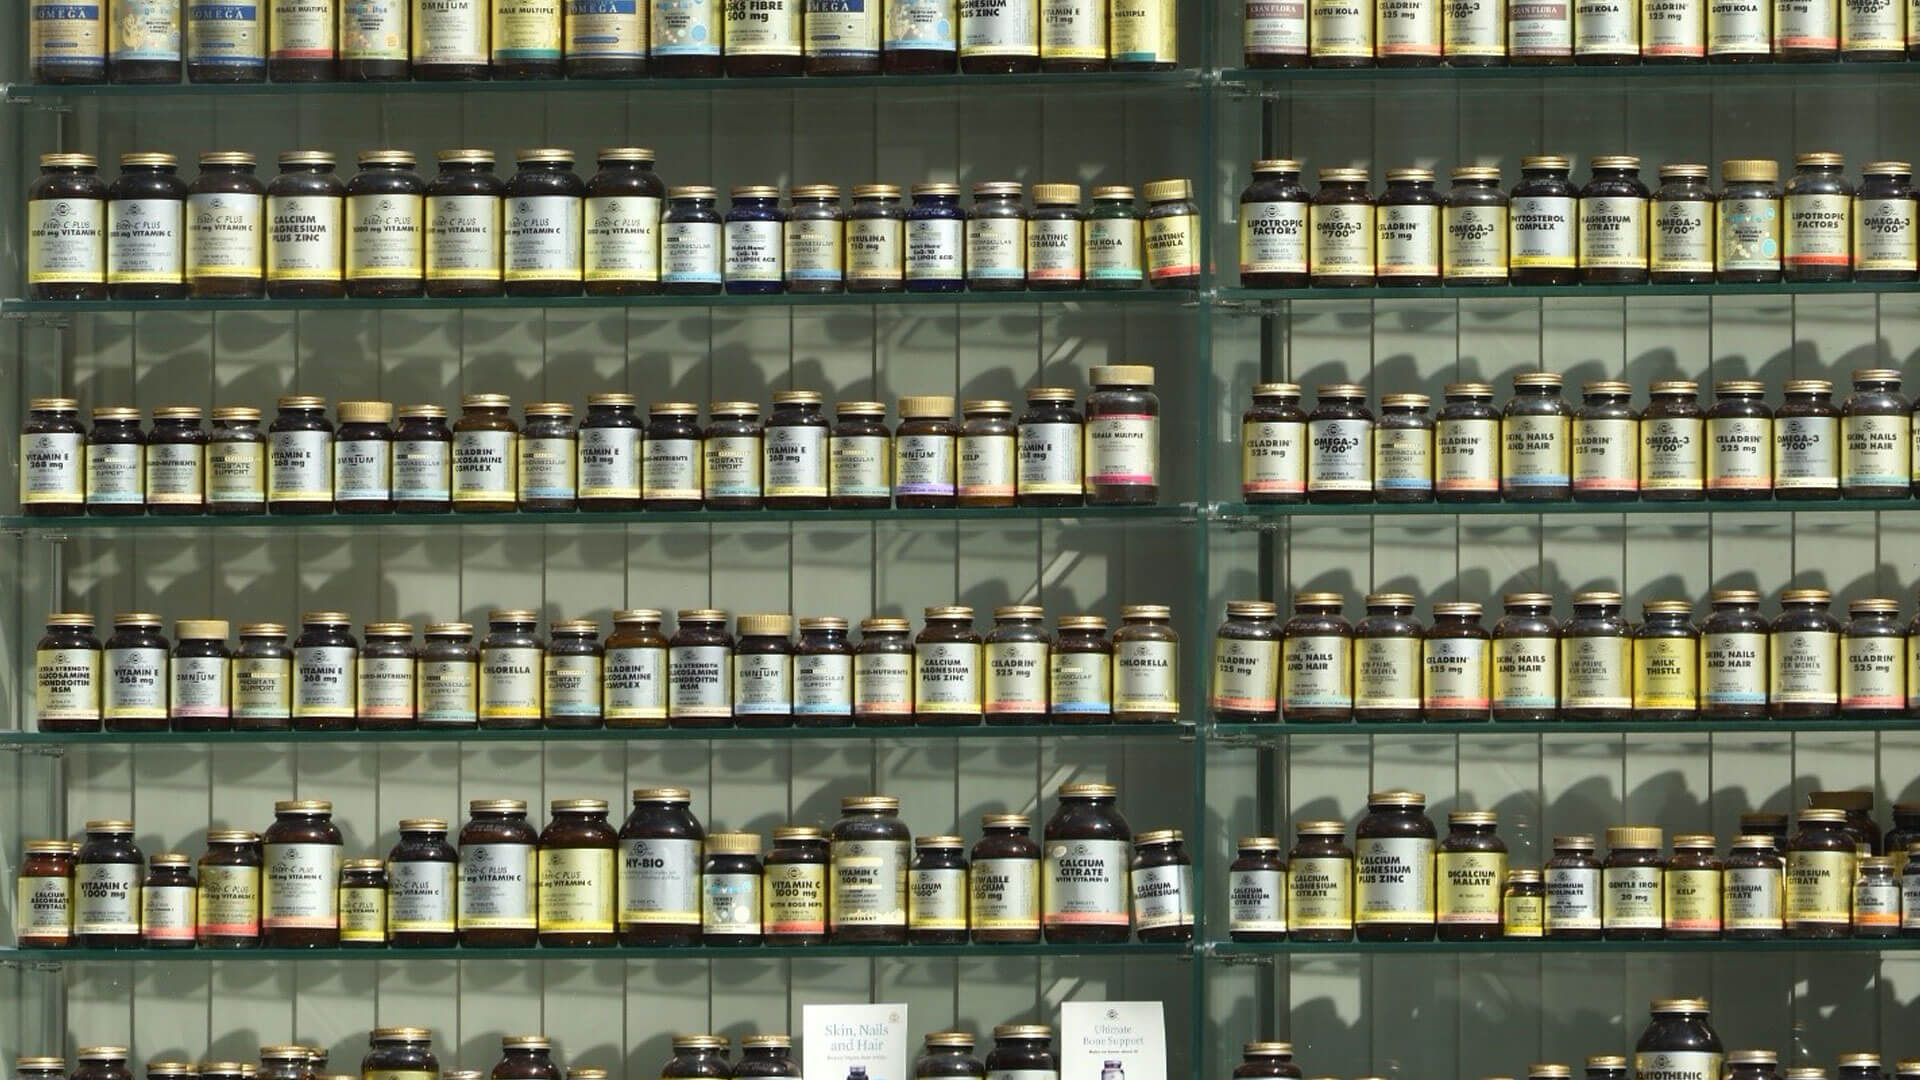 Shelving at a retail store full of dietary supplement products.